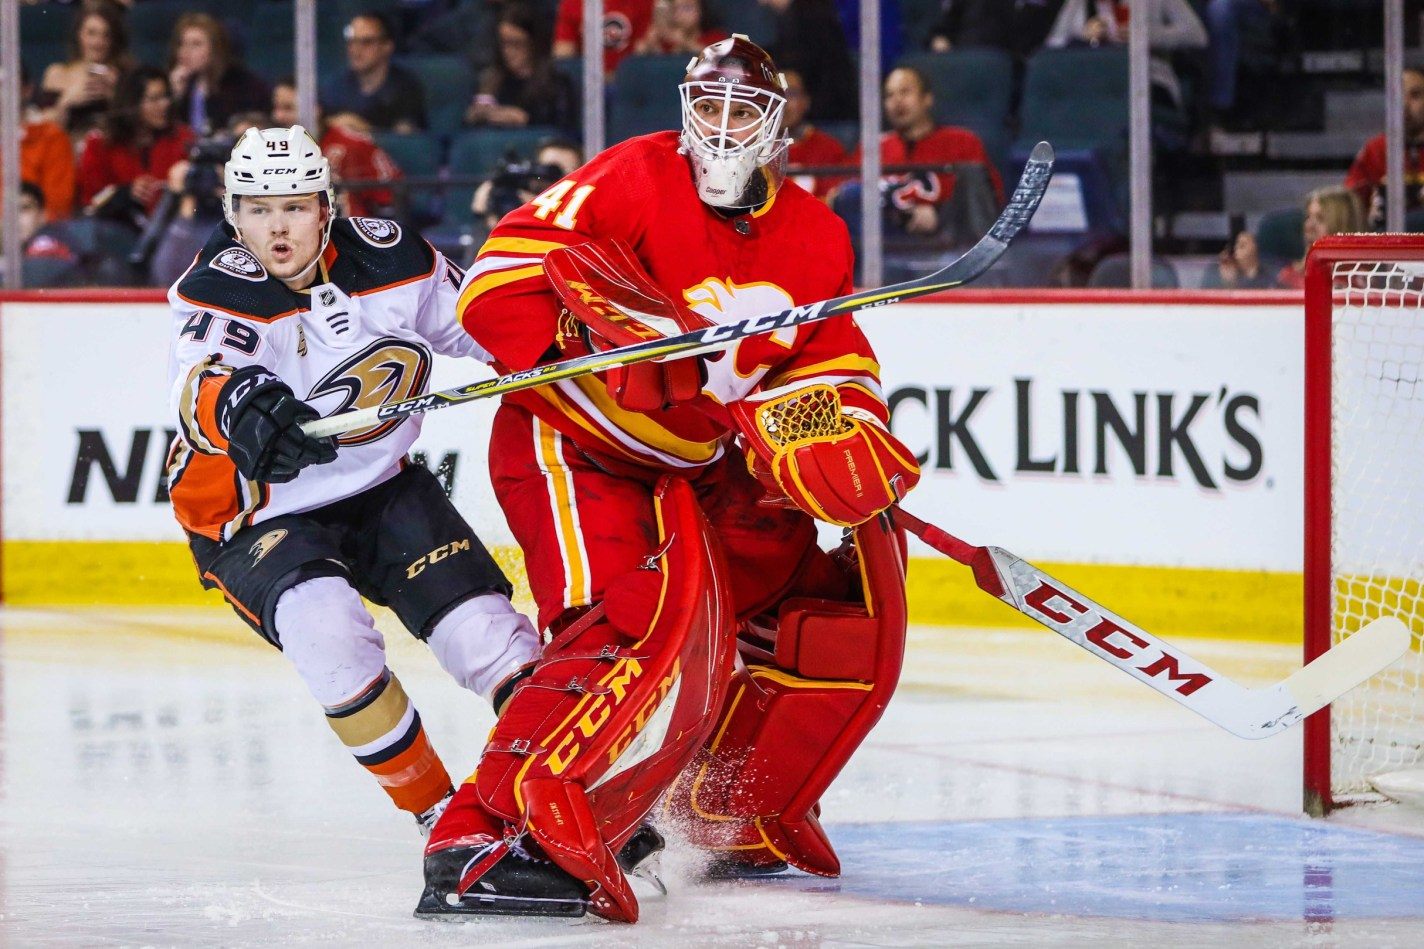 Quips And Quotes Flames Beat The Ducks 6 1 Flamesnation